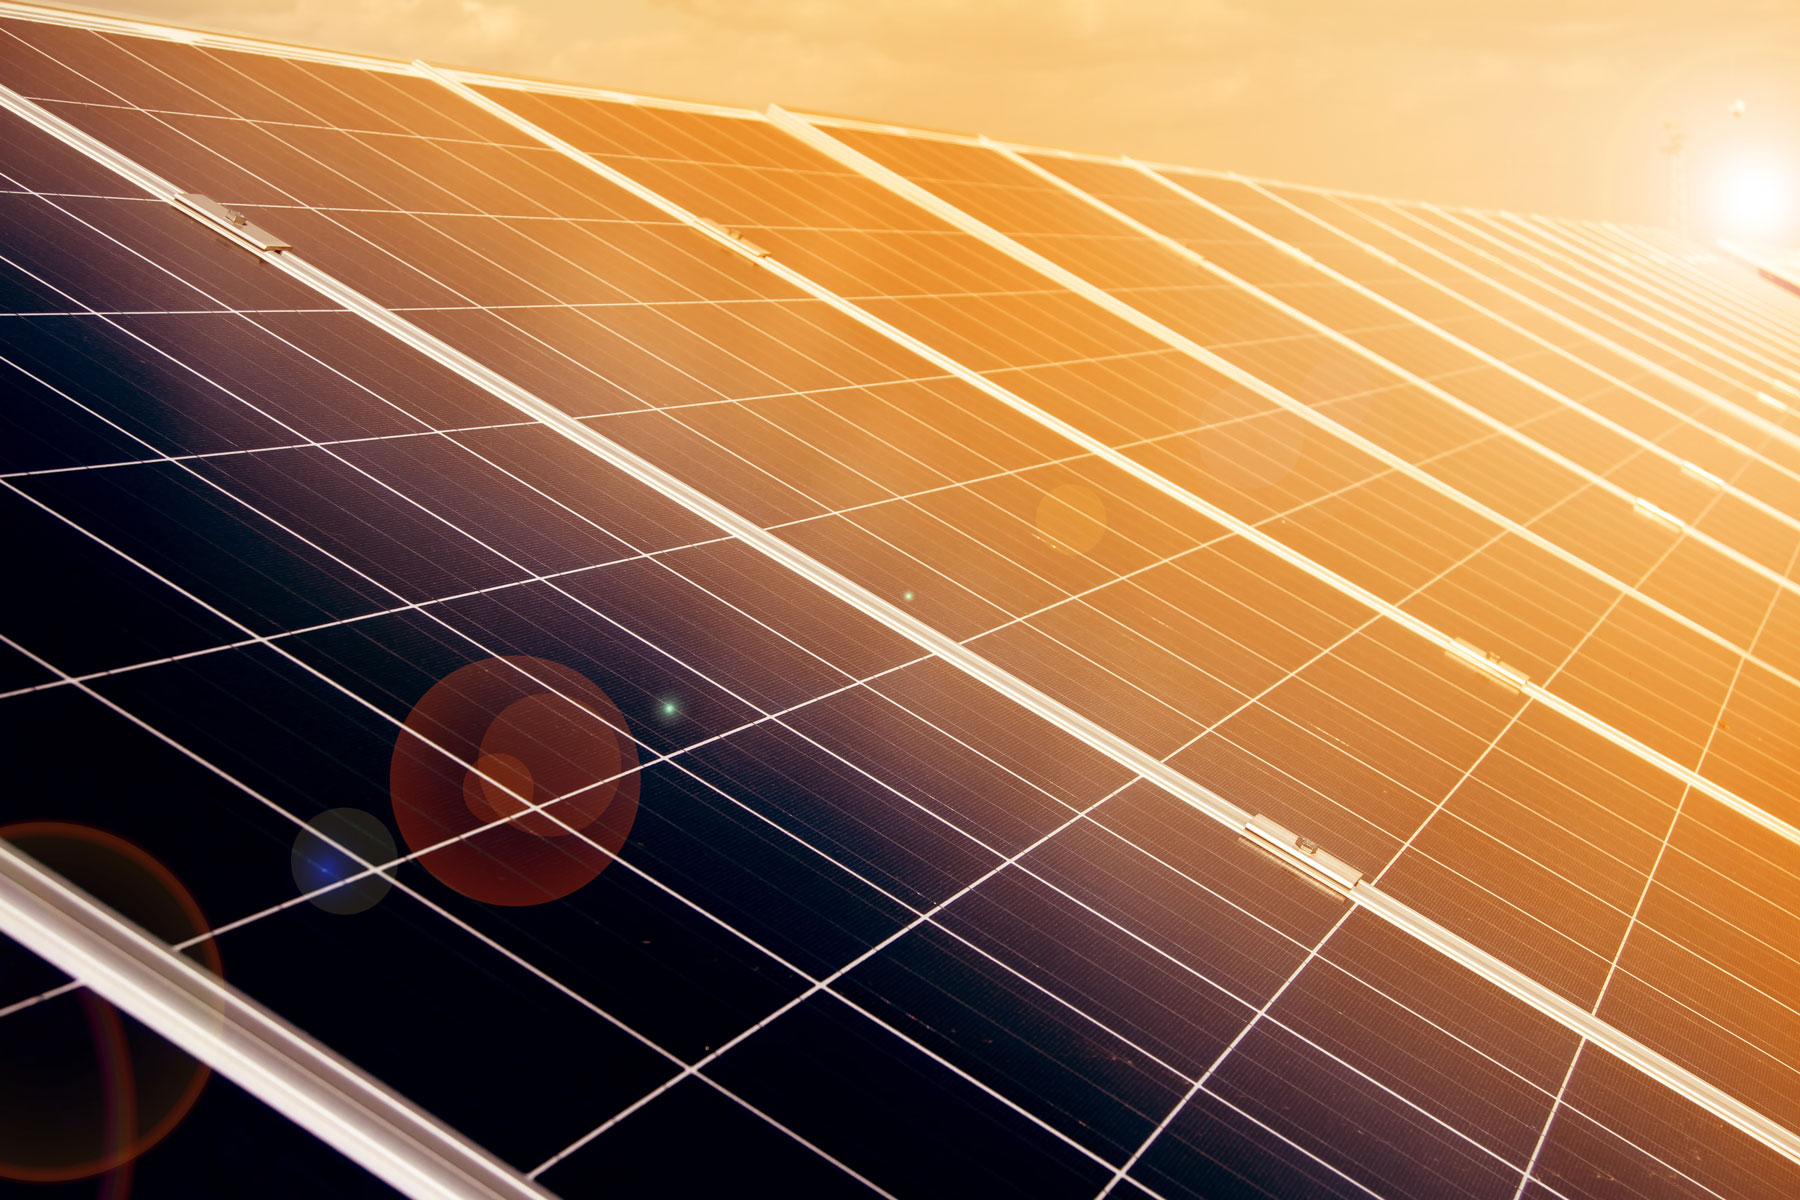 Close up image of solar panels